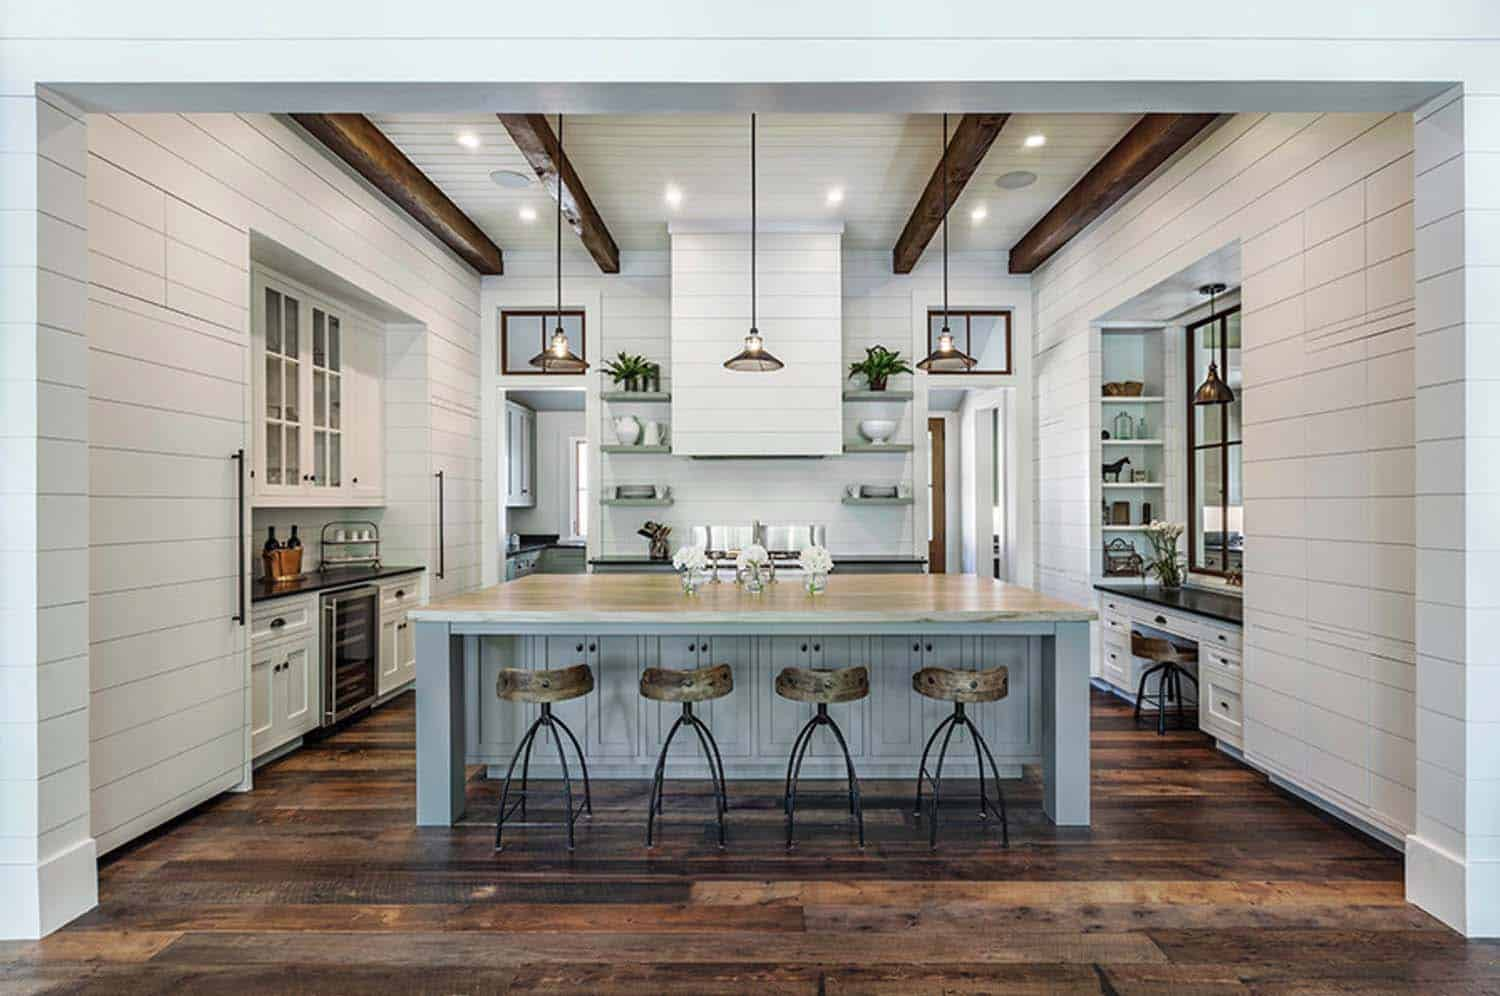 Bright Water Bay Lake House-Wright Design-06-1 Kindesign